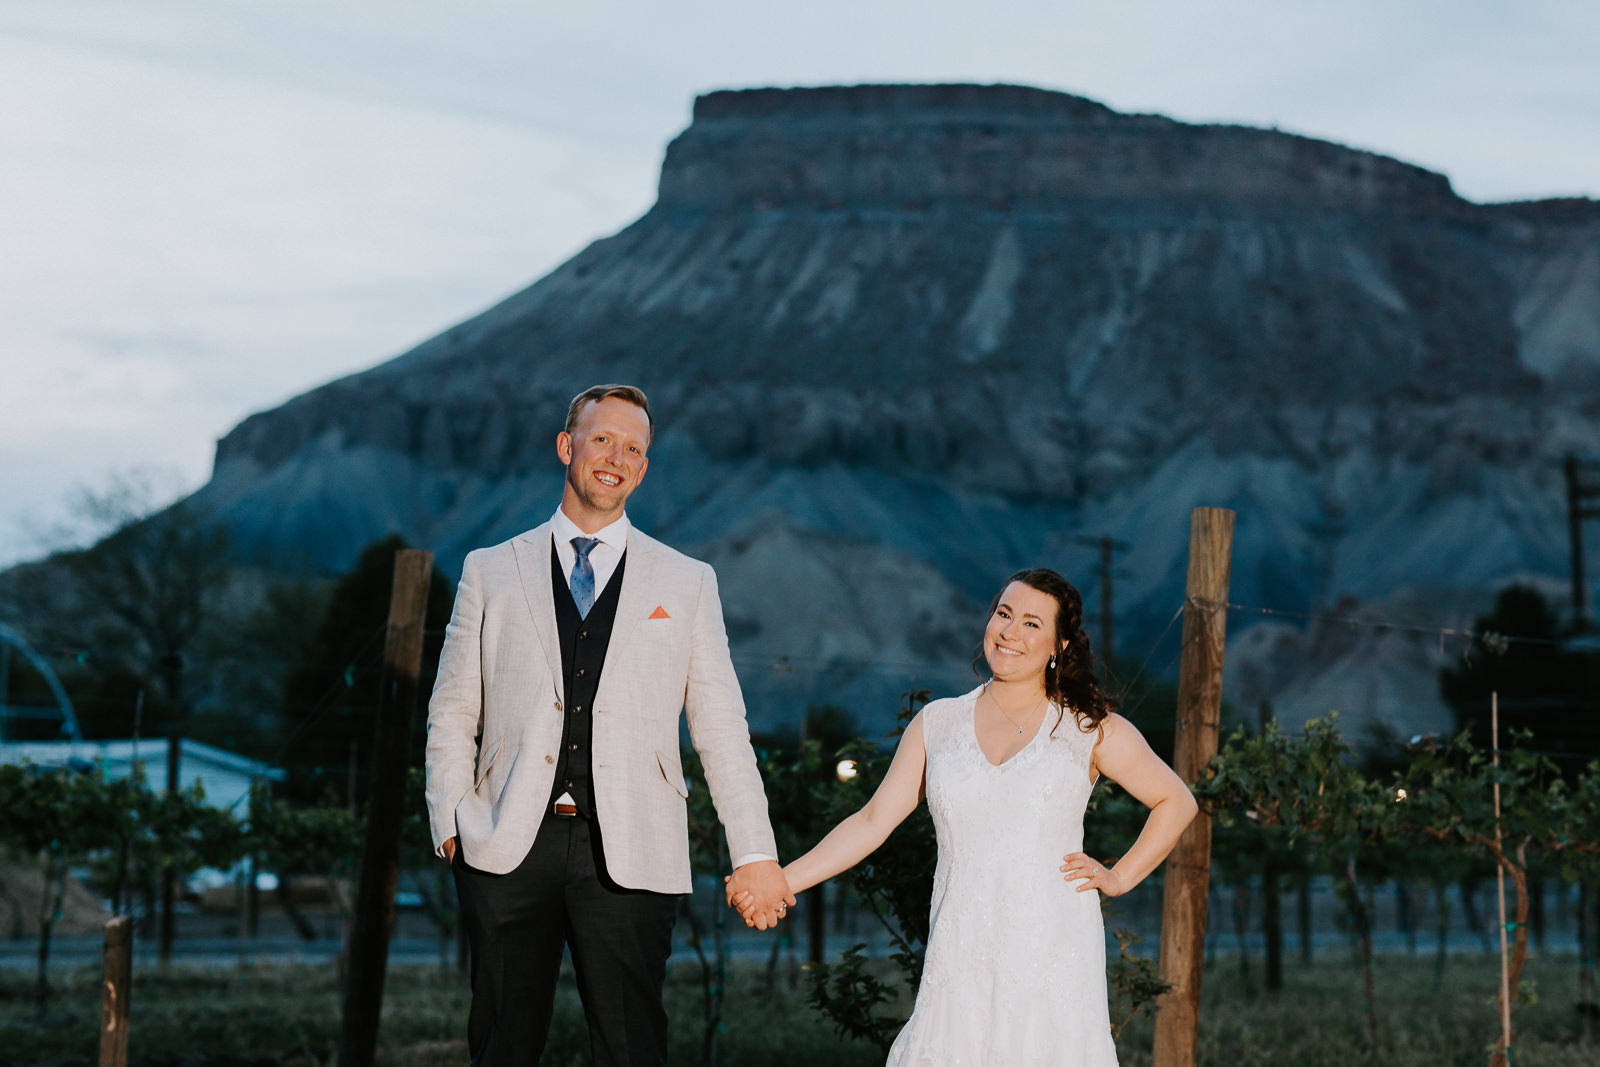 Smiling groom and bride illuminated with Mount Garfield in background near Grand Junction, Colorado